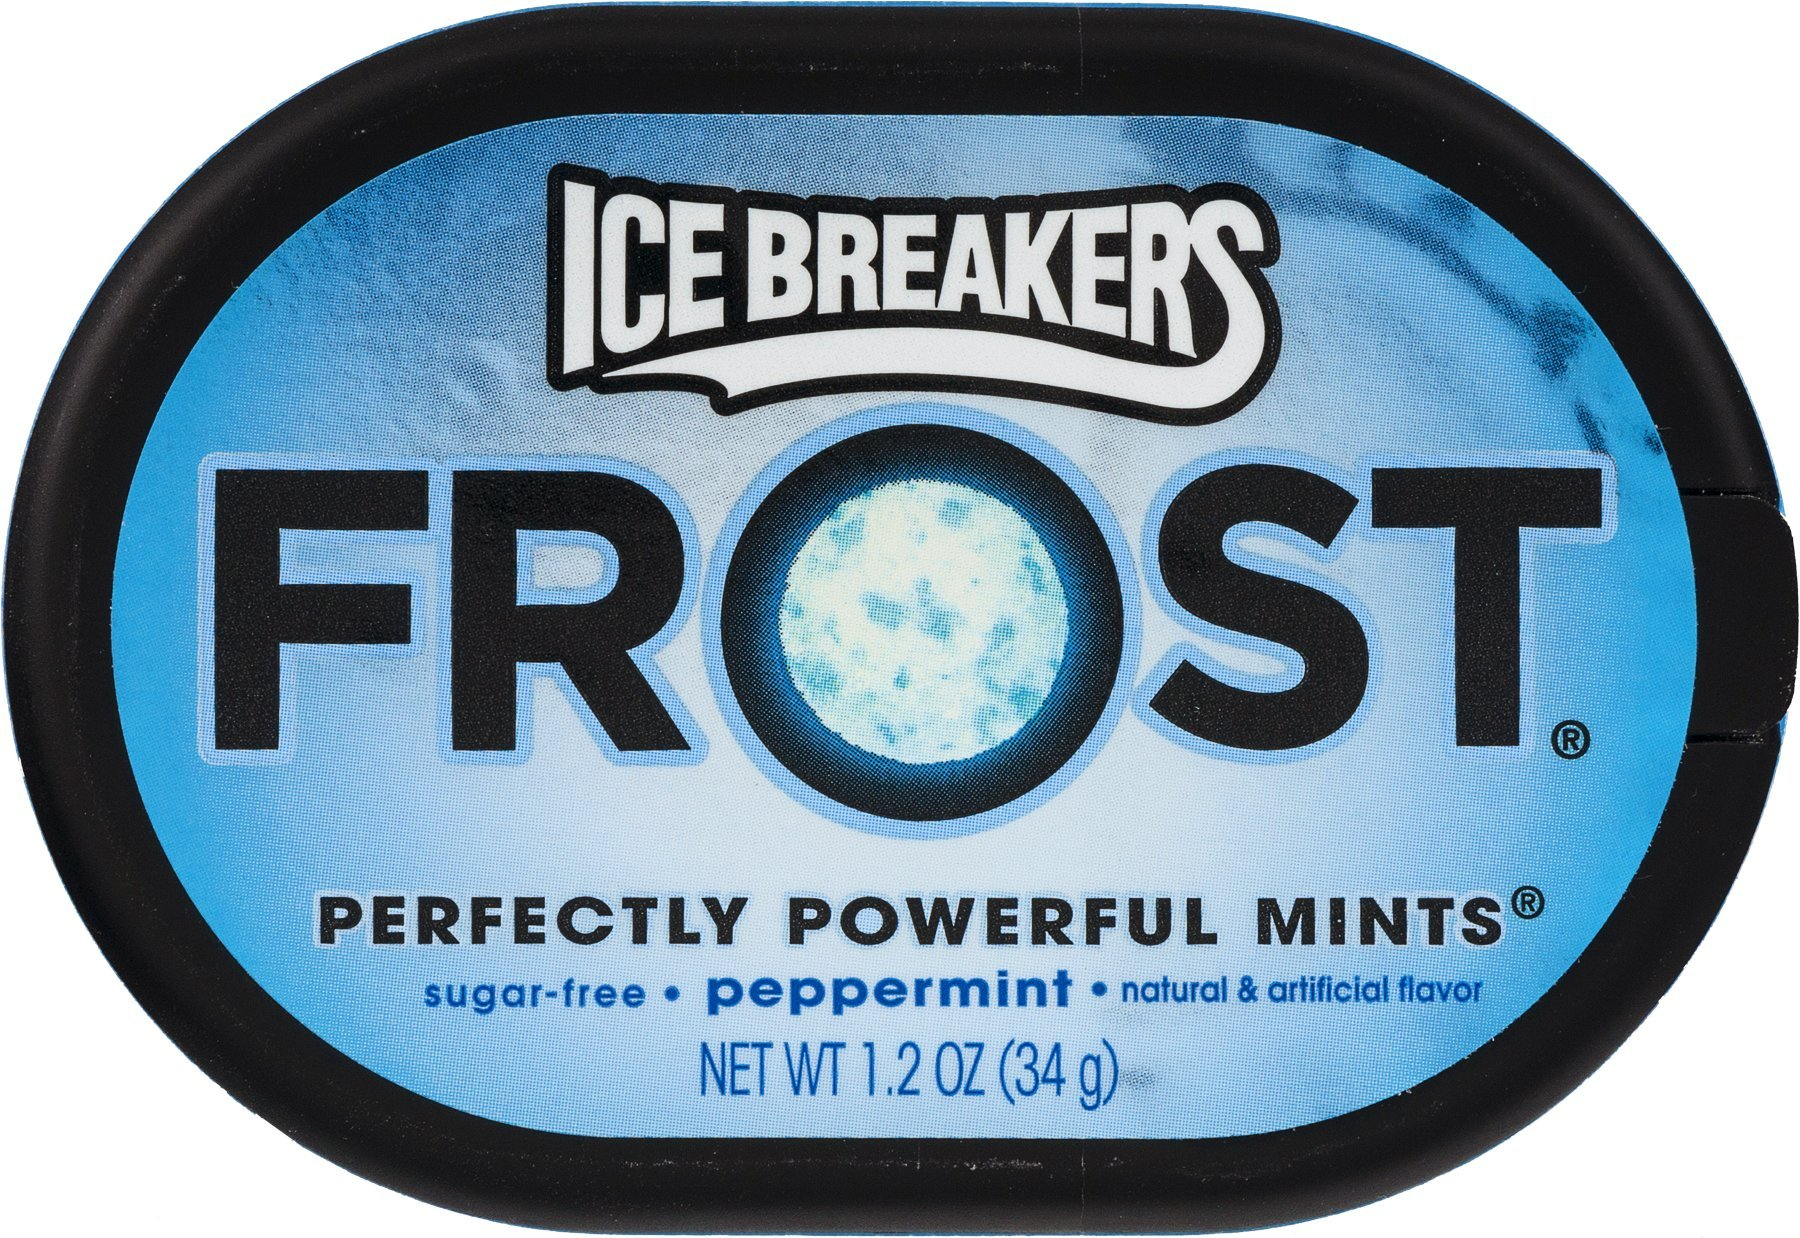 Ice Breakers Frost Peppermint Pucks, 1.2 oz Pucks (Pack of 20) by Ice Breakers